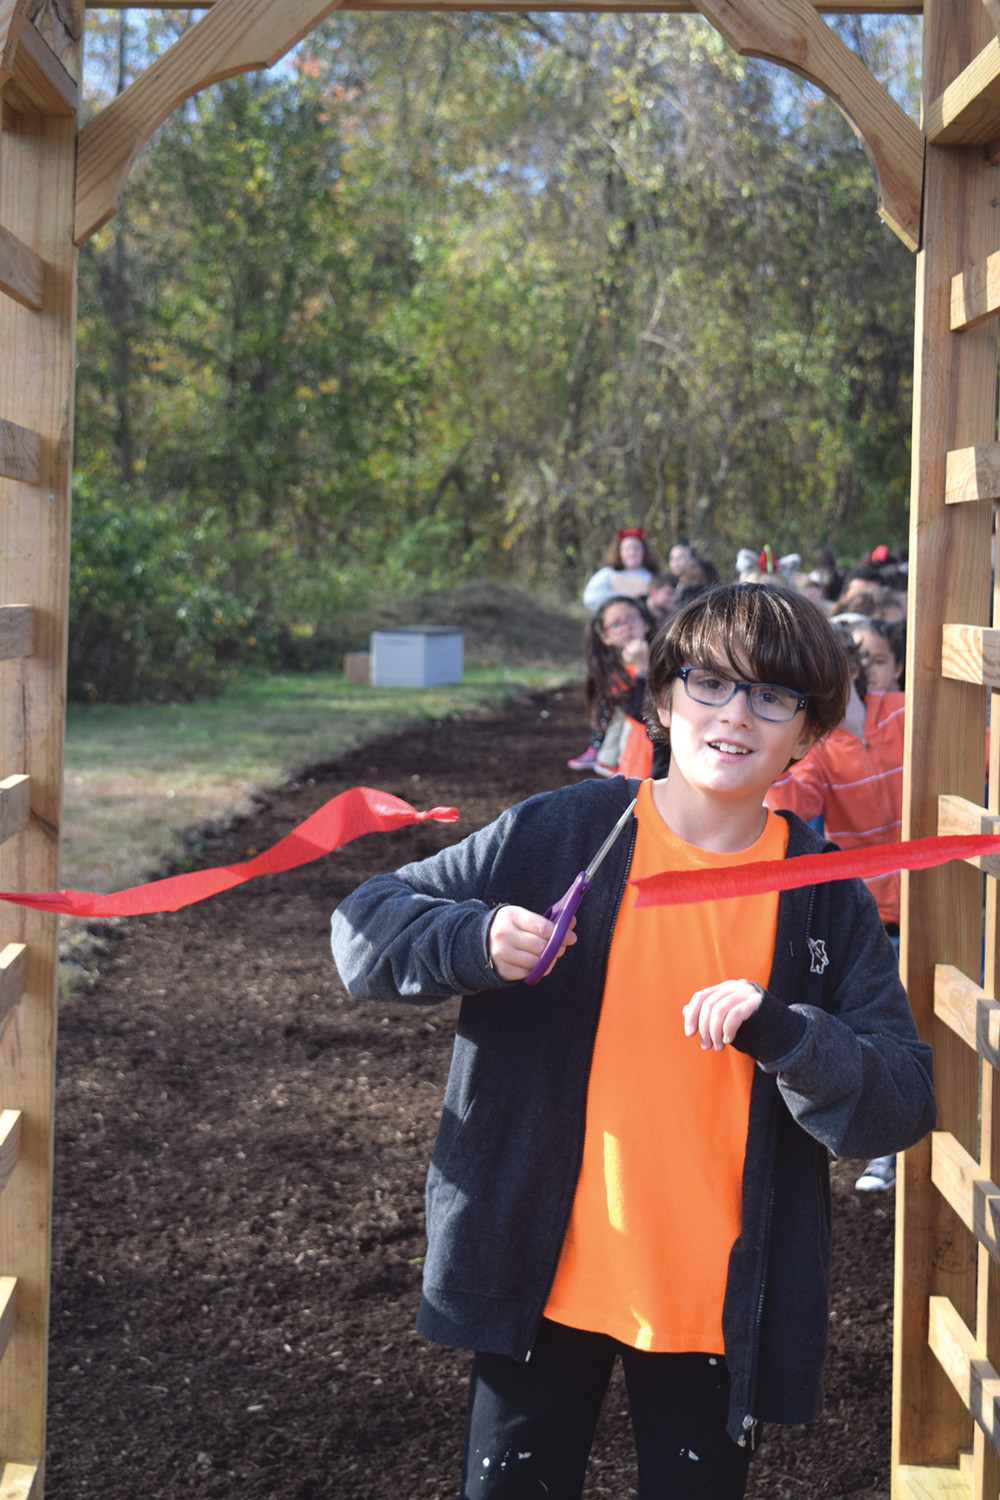 OFFICIALLY OPEN FOR LEARNING: Jonas Littlefield cuts the ribbon, officially opening the outdoor habitat for generations to come. (Submitted photo courtesy of Sarah Dyer Barnes Elementary School)